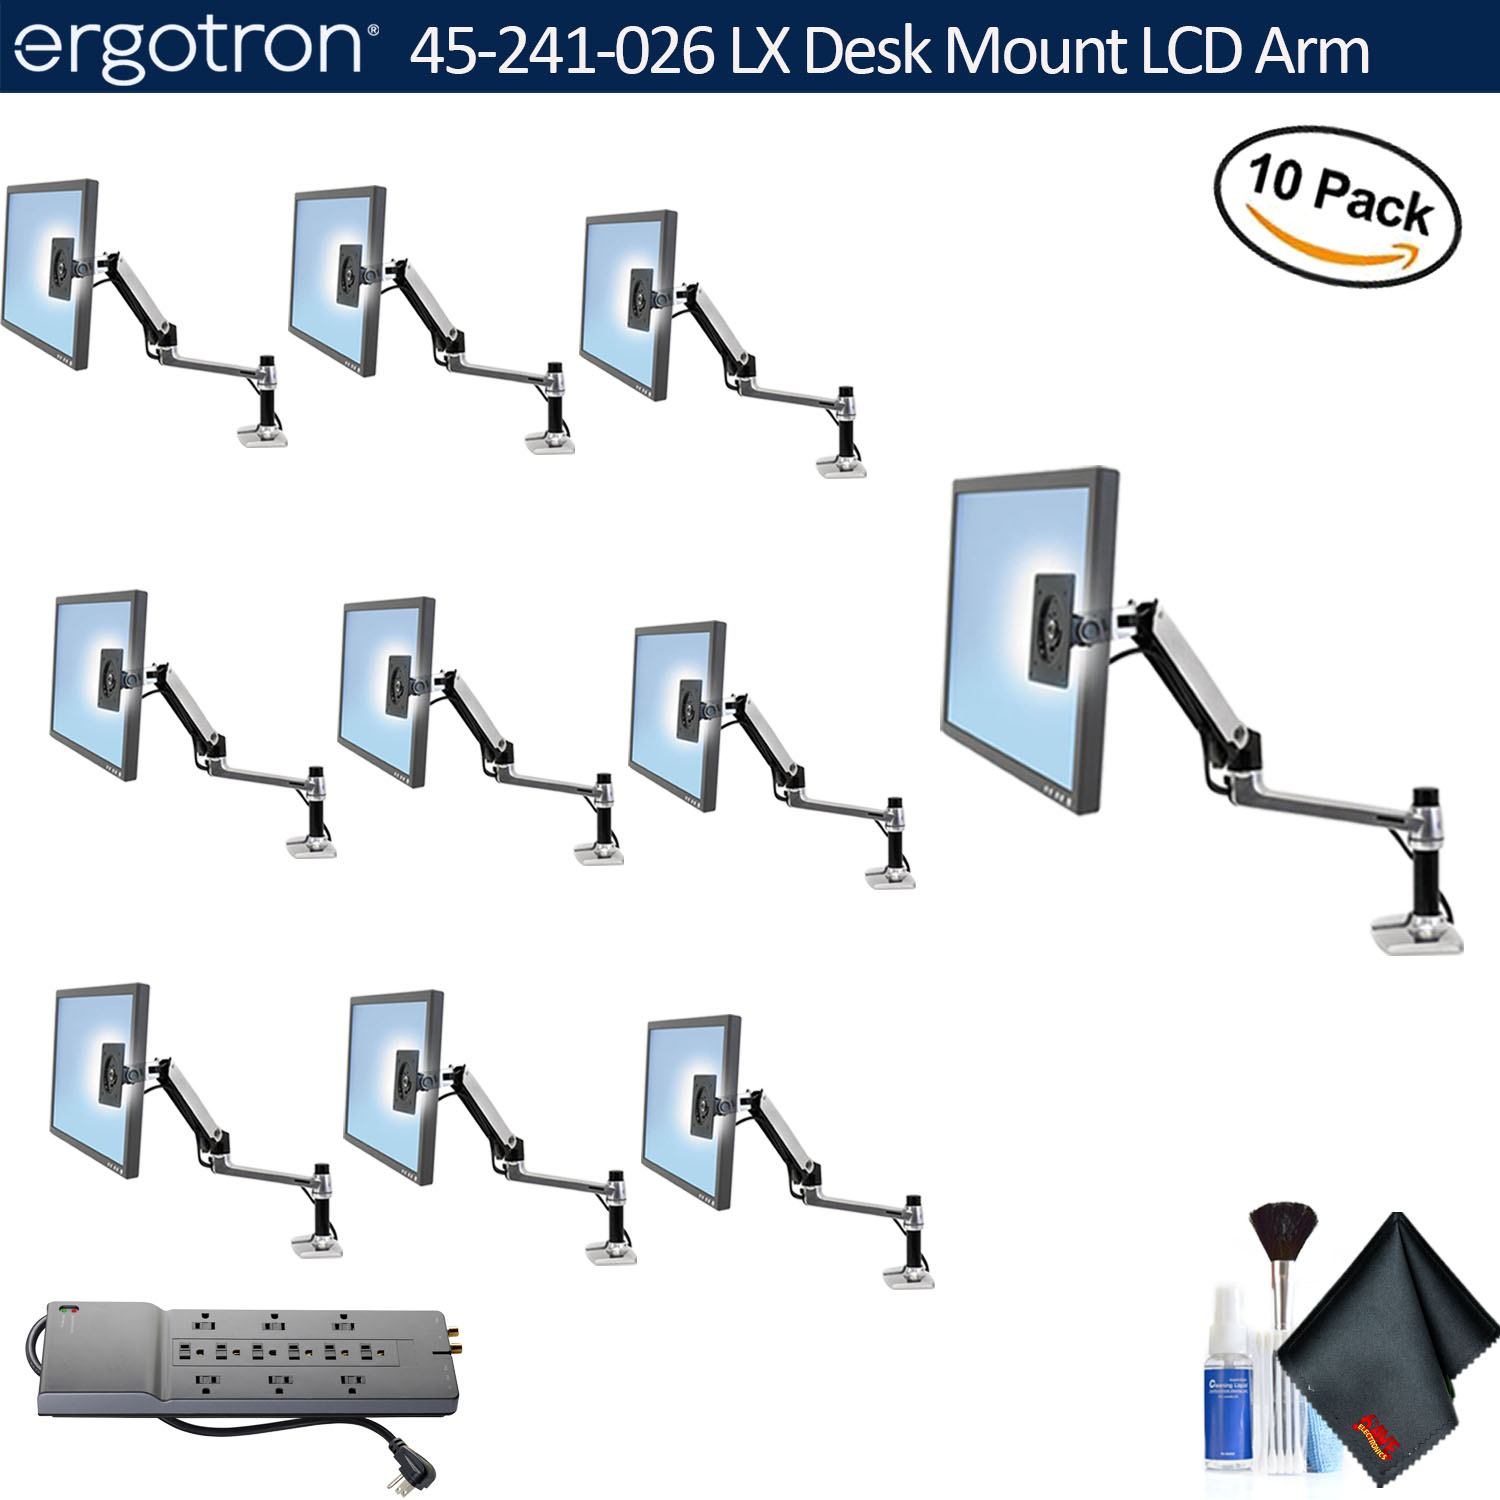 Ergotron LX Desk Mount LCD Arm   10 Pack With Essential Accessories And  Power Strip